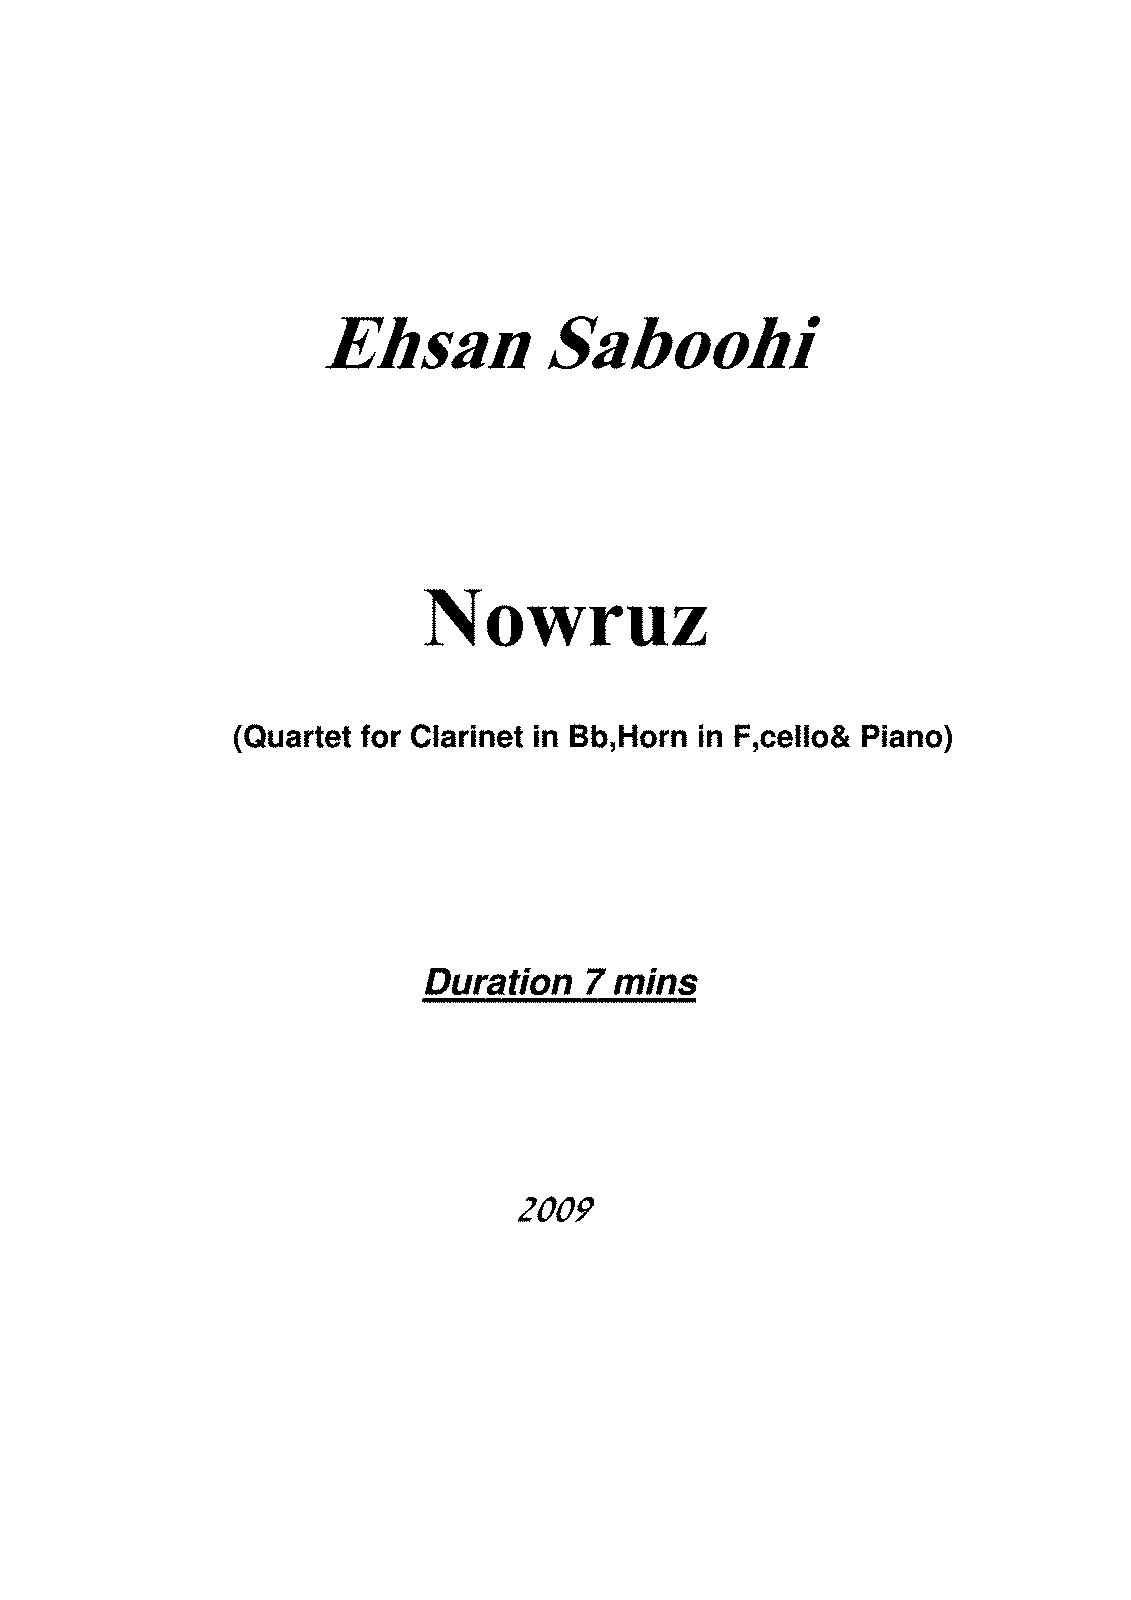 PMLP69322-Nowruz ((Quartet for Clarinet in Bb,Horn in F,cello& Piano).pdf